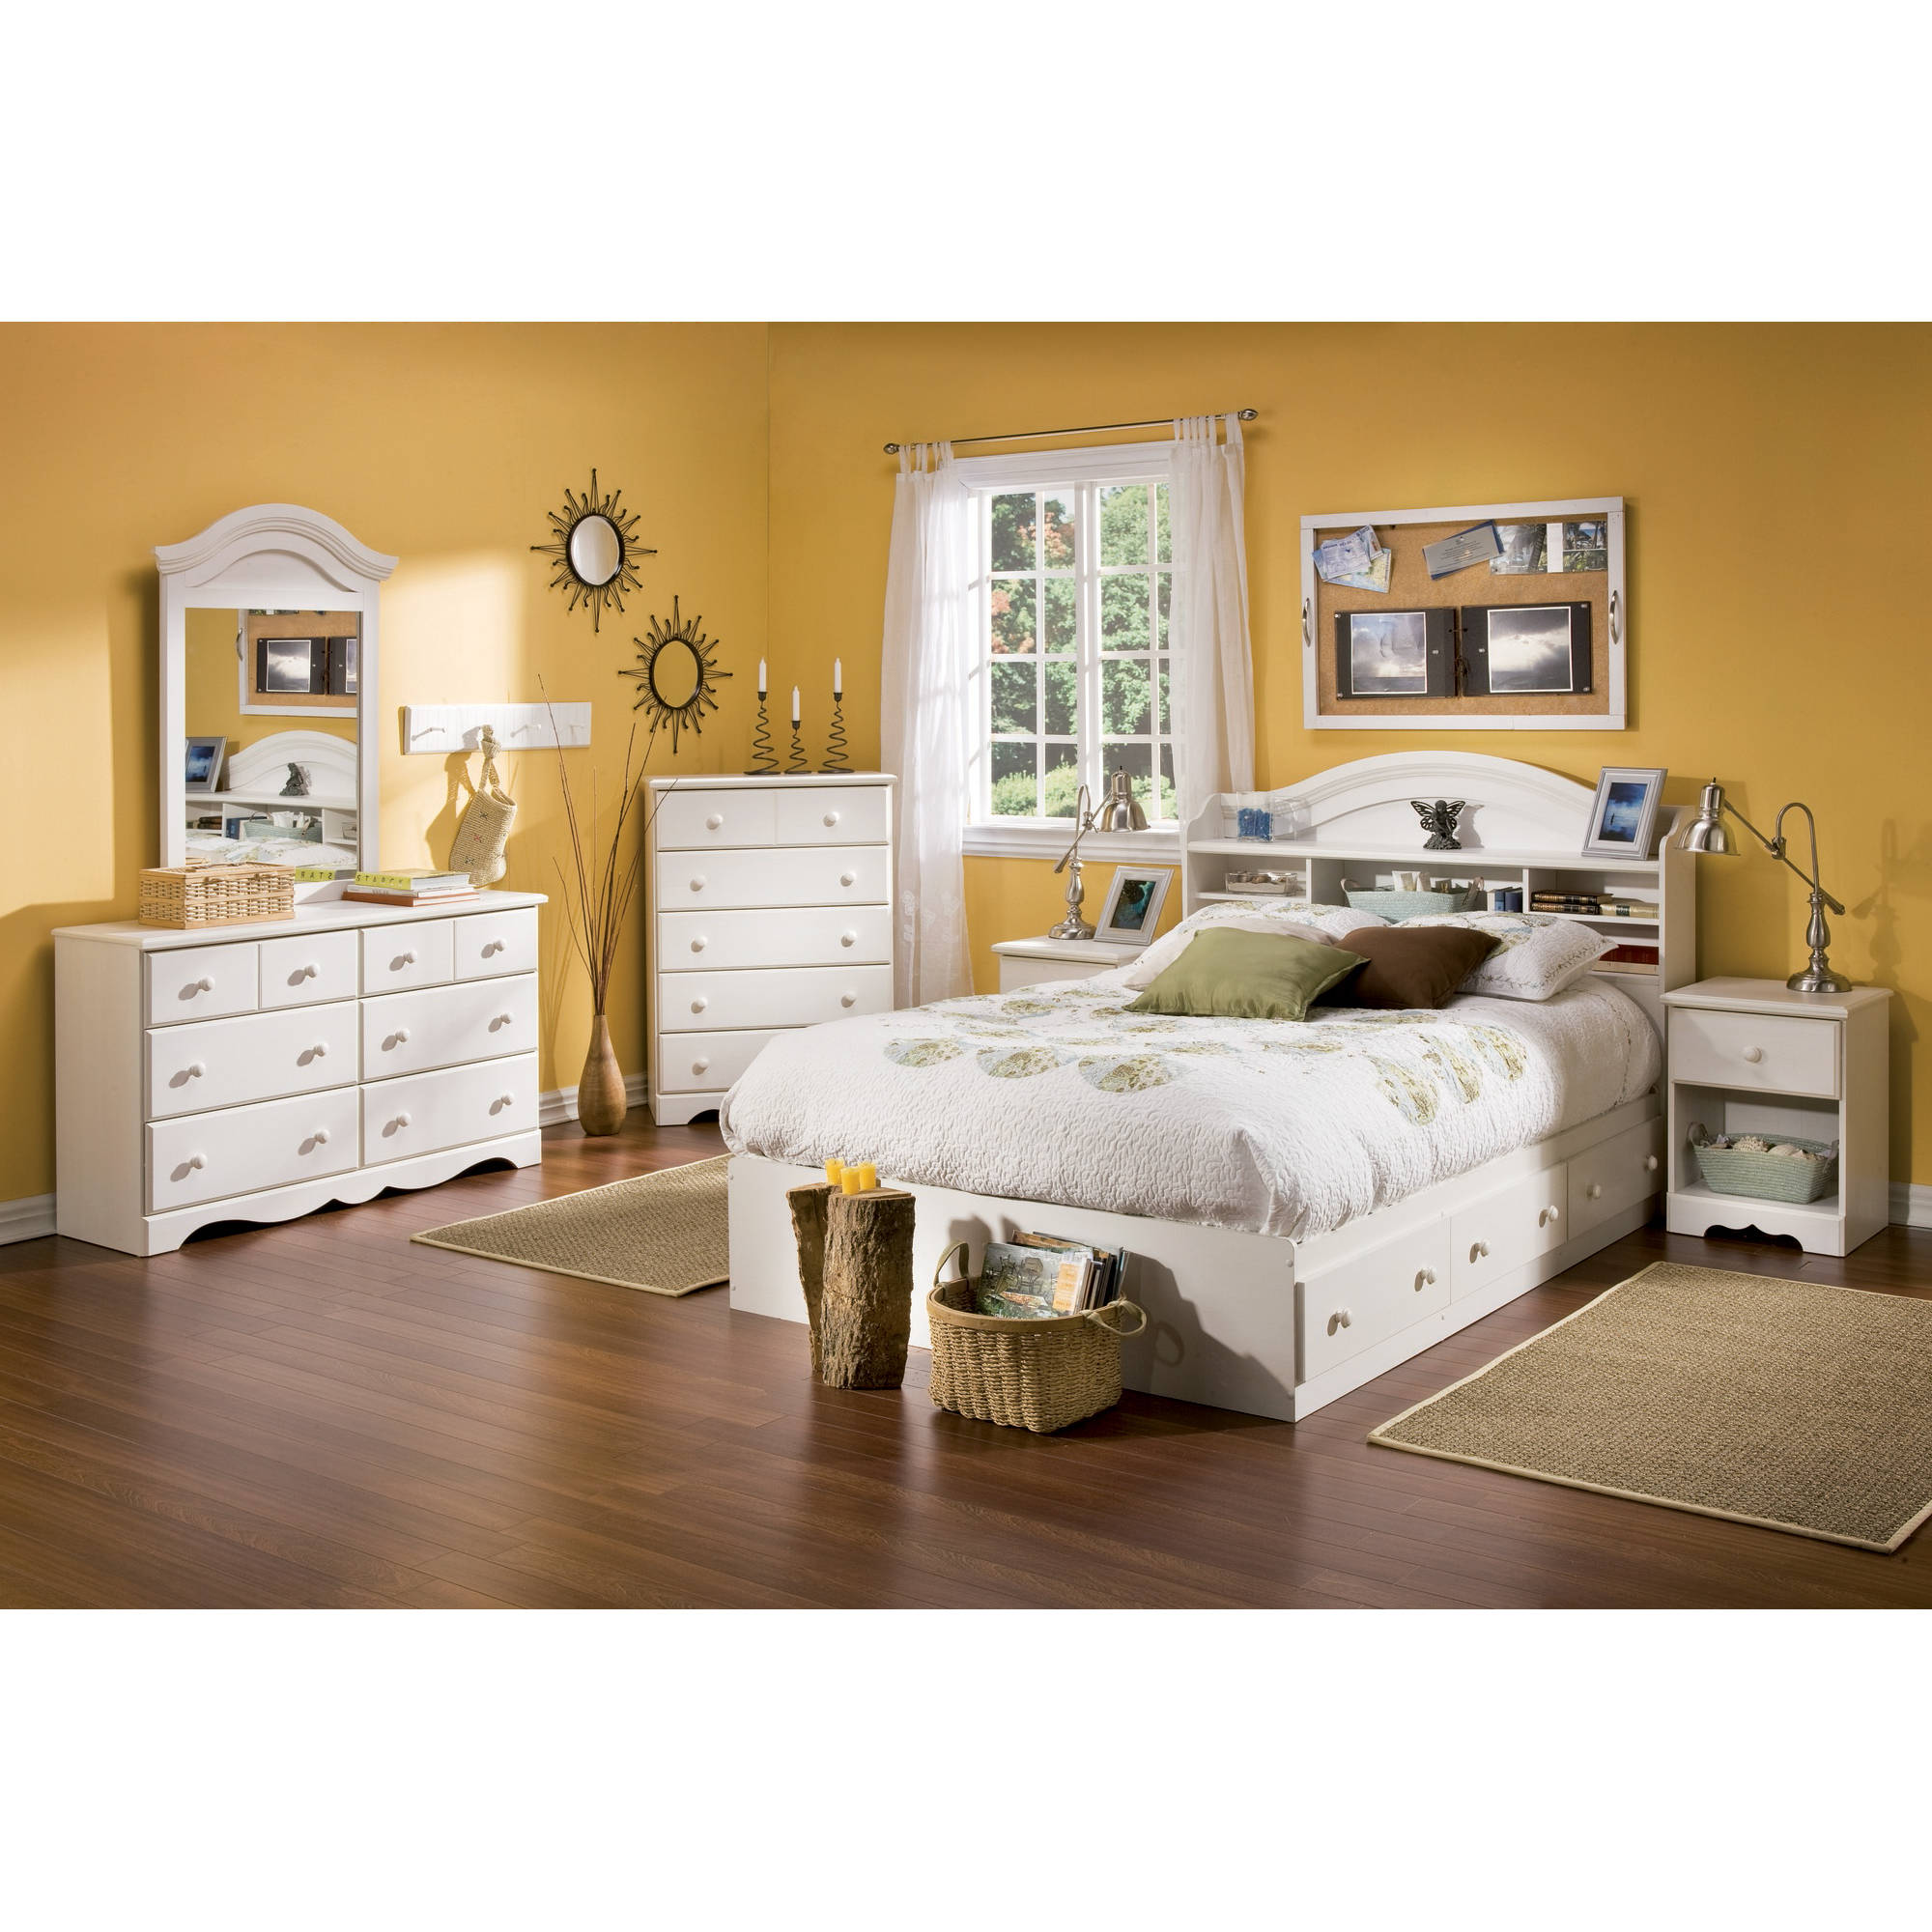 High Quality South Shore Summer Breeze 4 Piece Bedroom Set, Full, White Wash